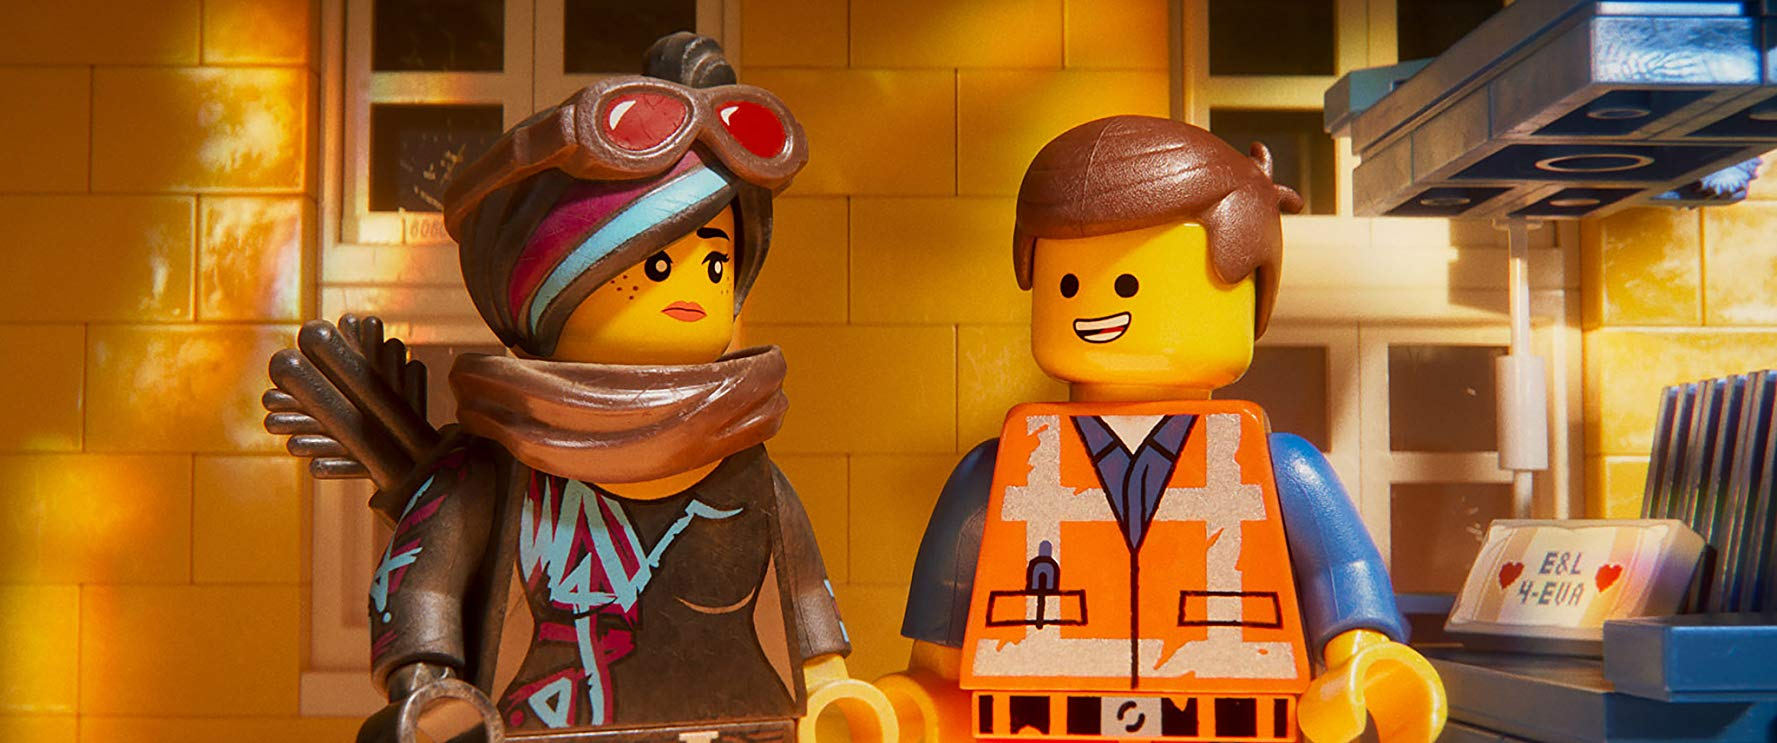 The LEGO Movie: The Second Part – Marketing Recap